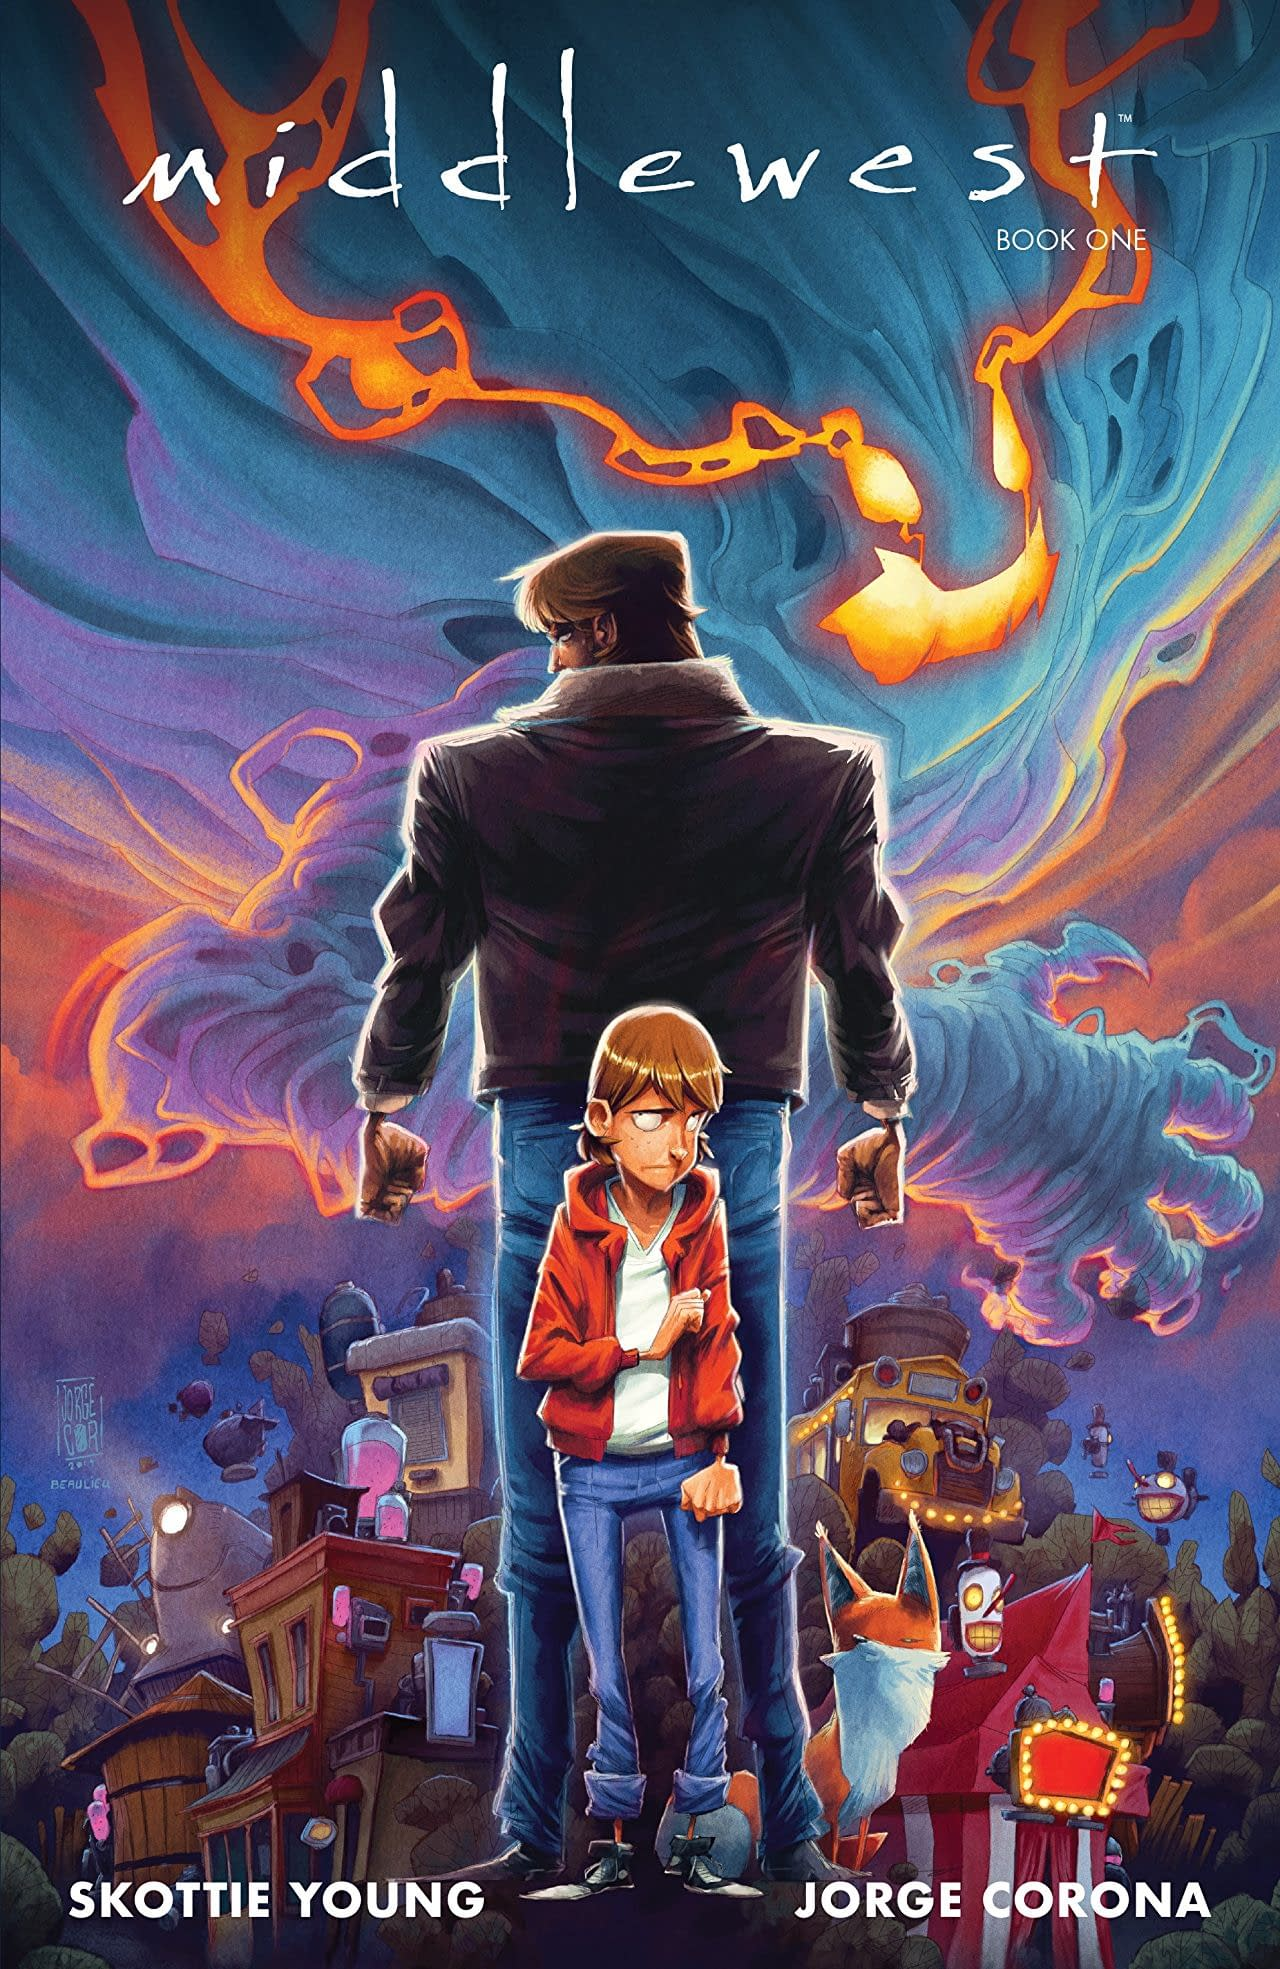 'Middlewest' Volume 1 Kicks off Epic Story of Magic and Adventure (REVIEW)